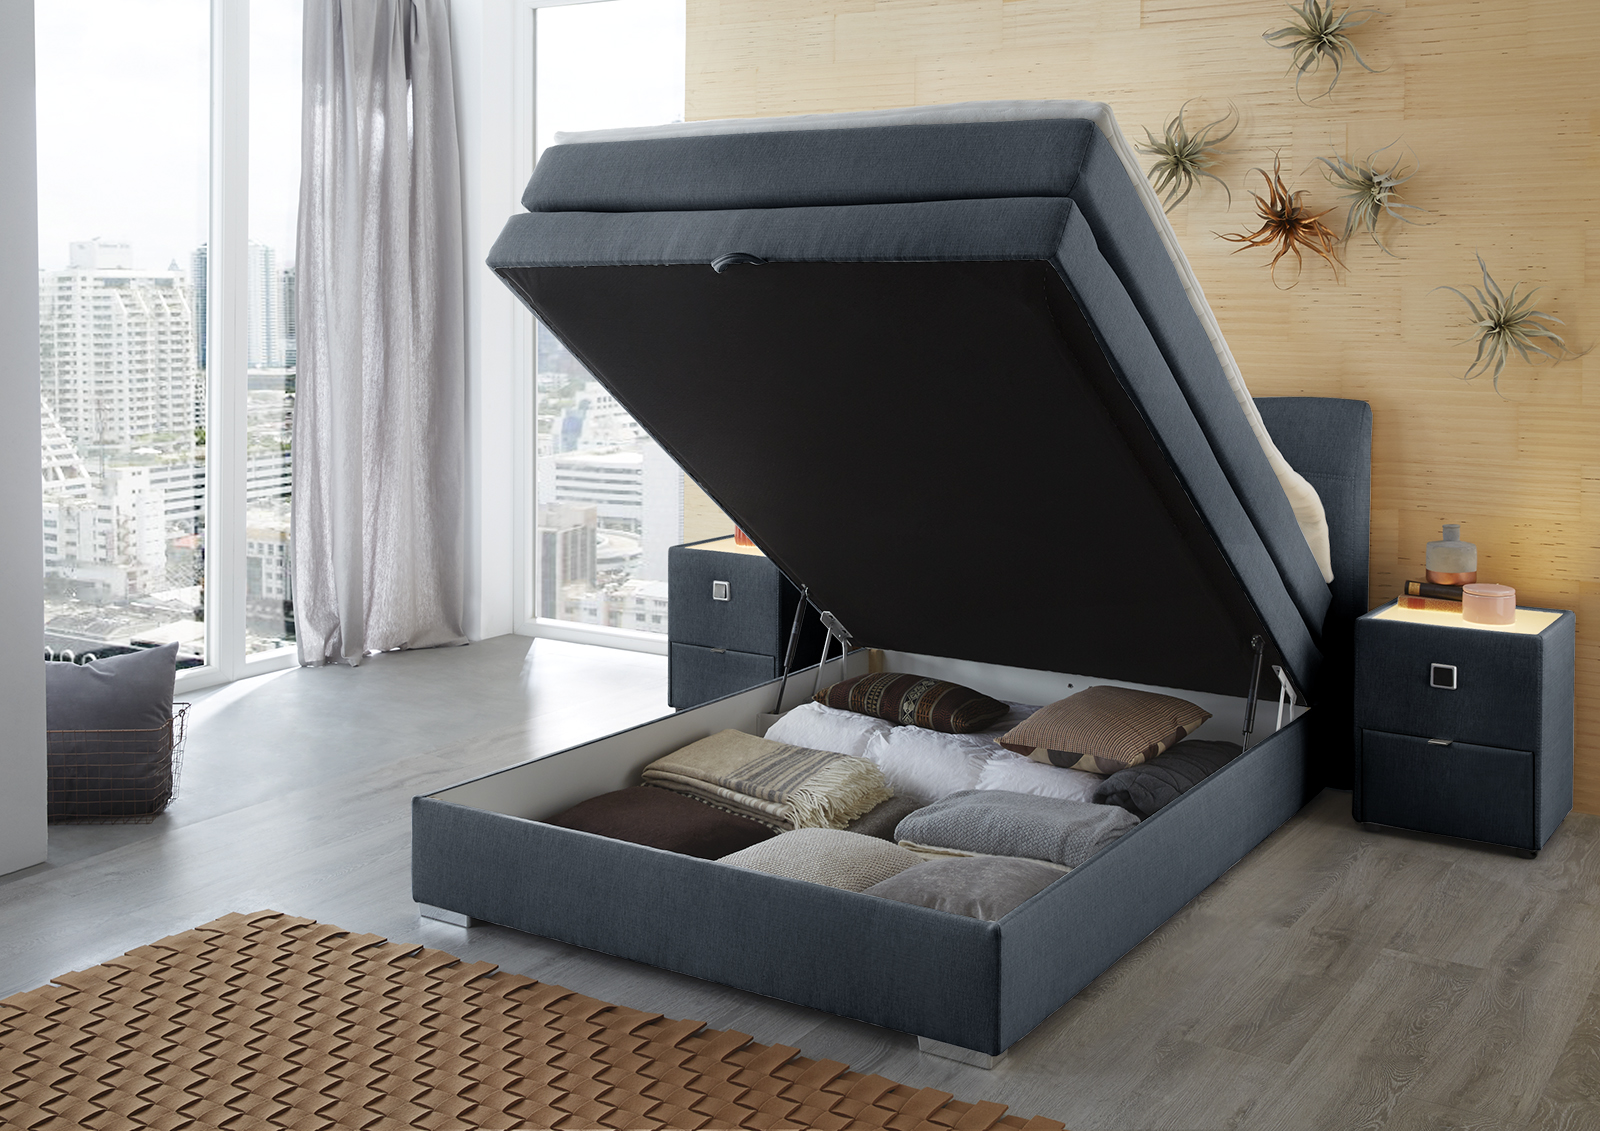 amelie boxspringbett 140x200 cm inkl bettkasten blau. Black Bedroom Furniture Sets. Home Design Ideas